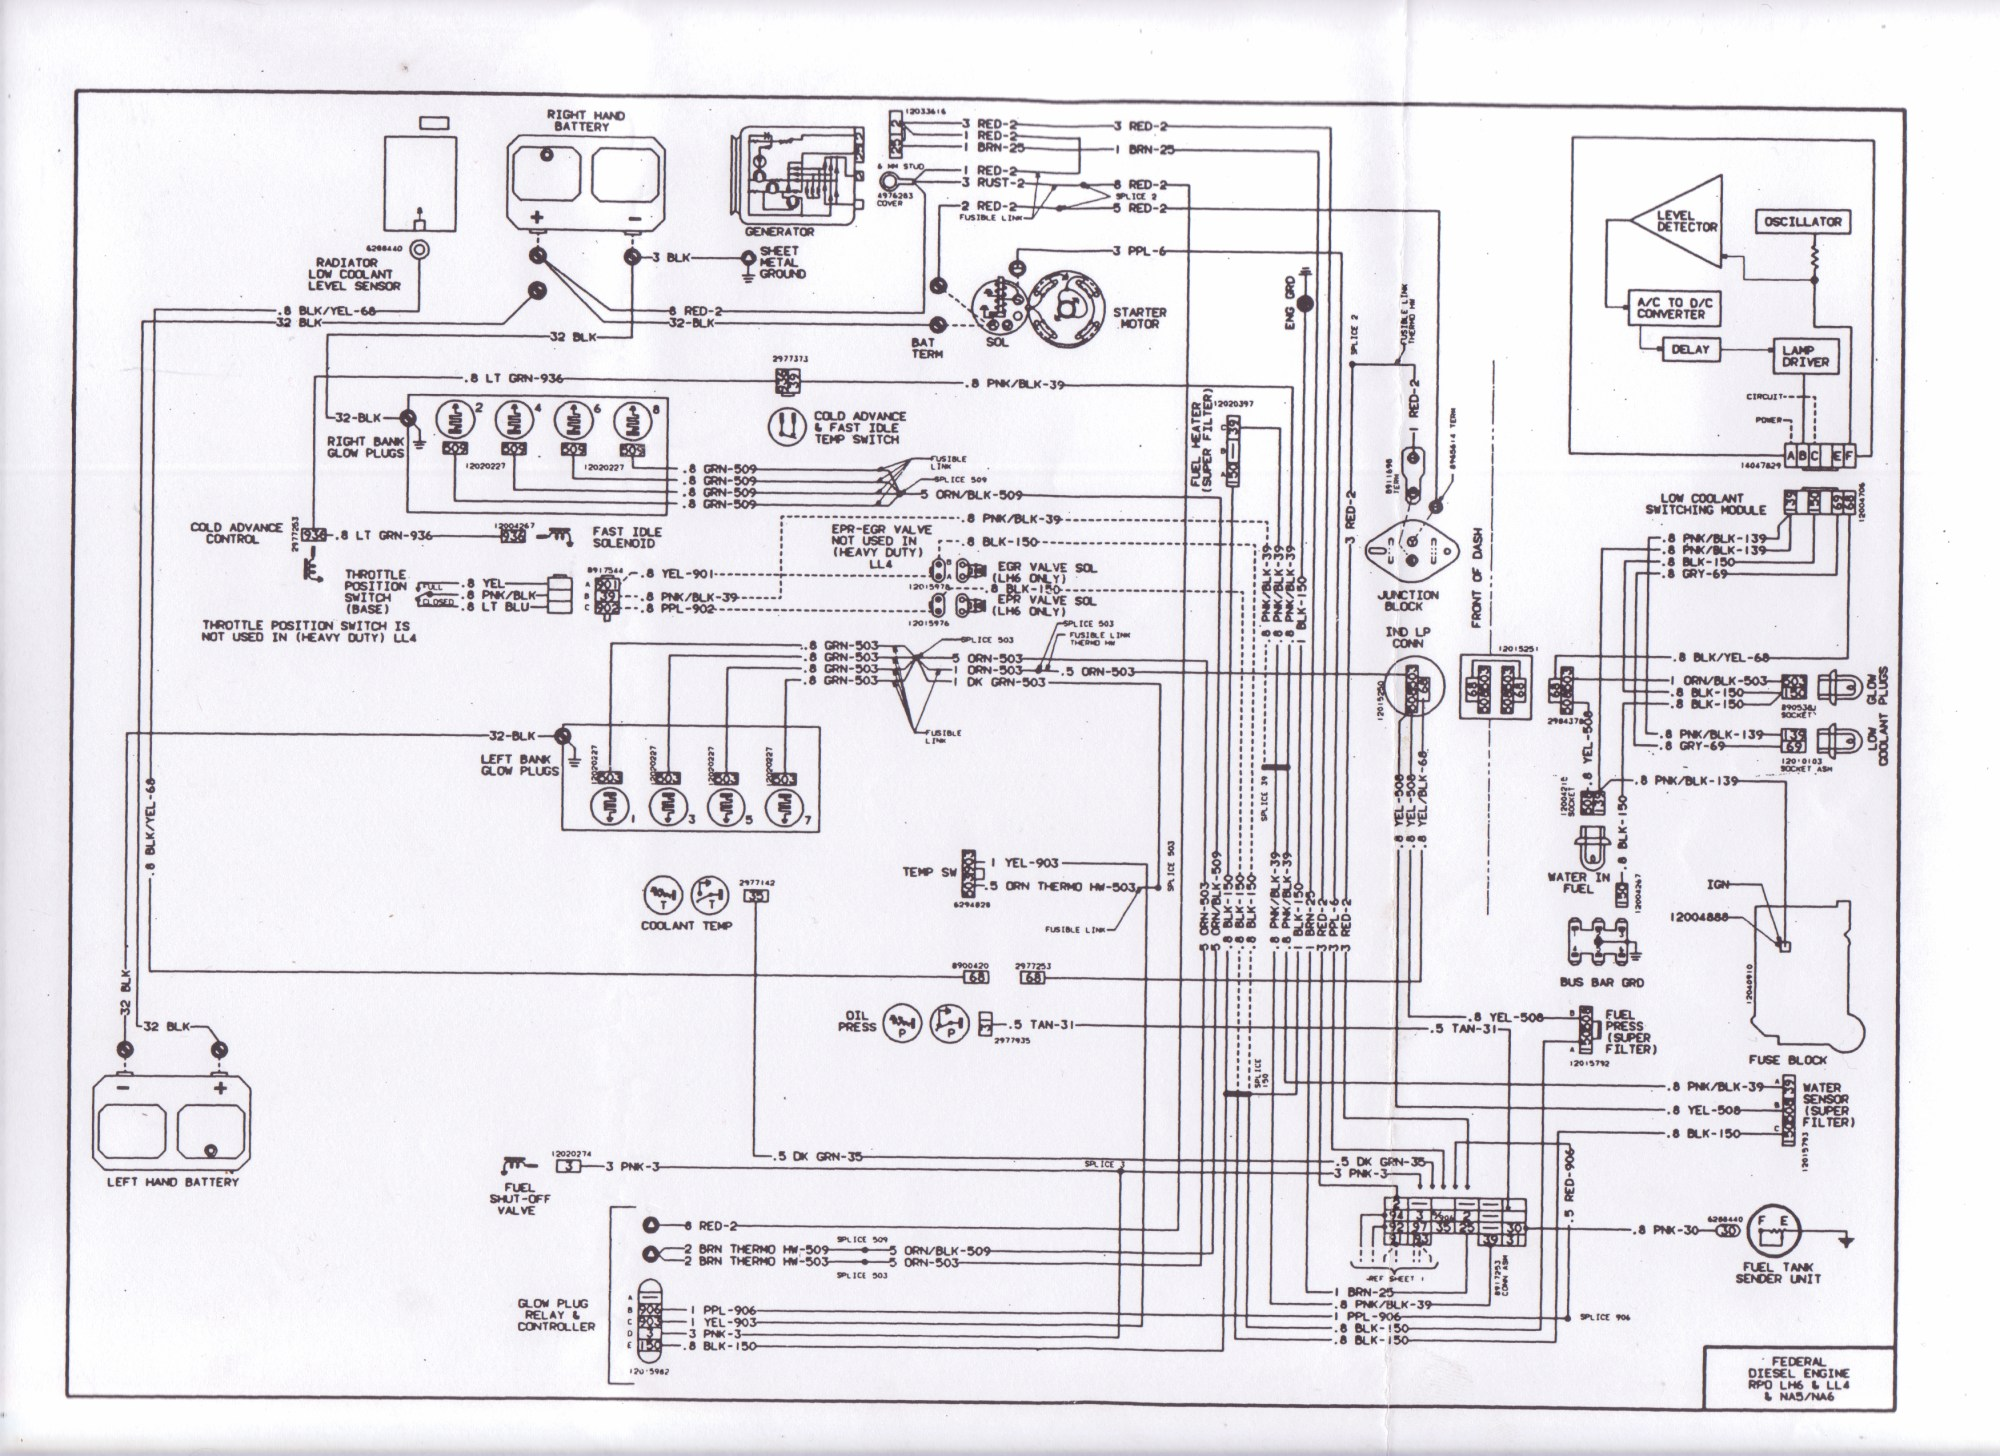 hight resolution of fire truck wiring diagram schema wiring diagram online 1948 seagrave fire truck schematics fire truck schematic